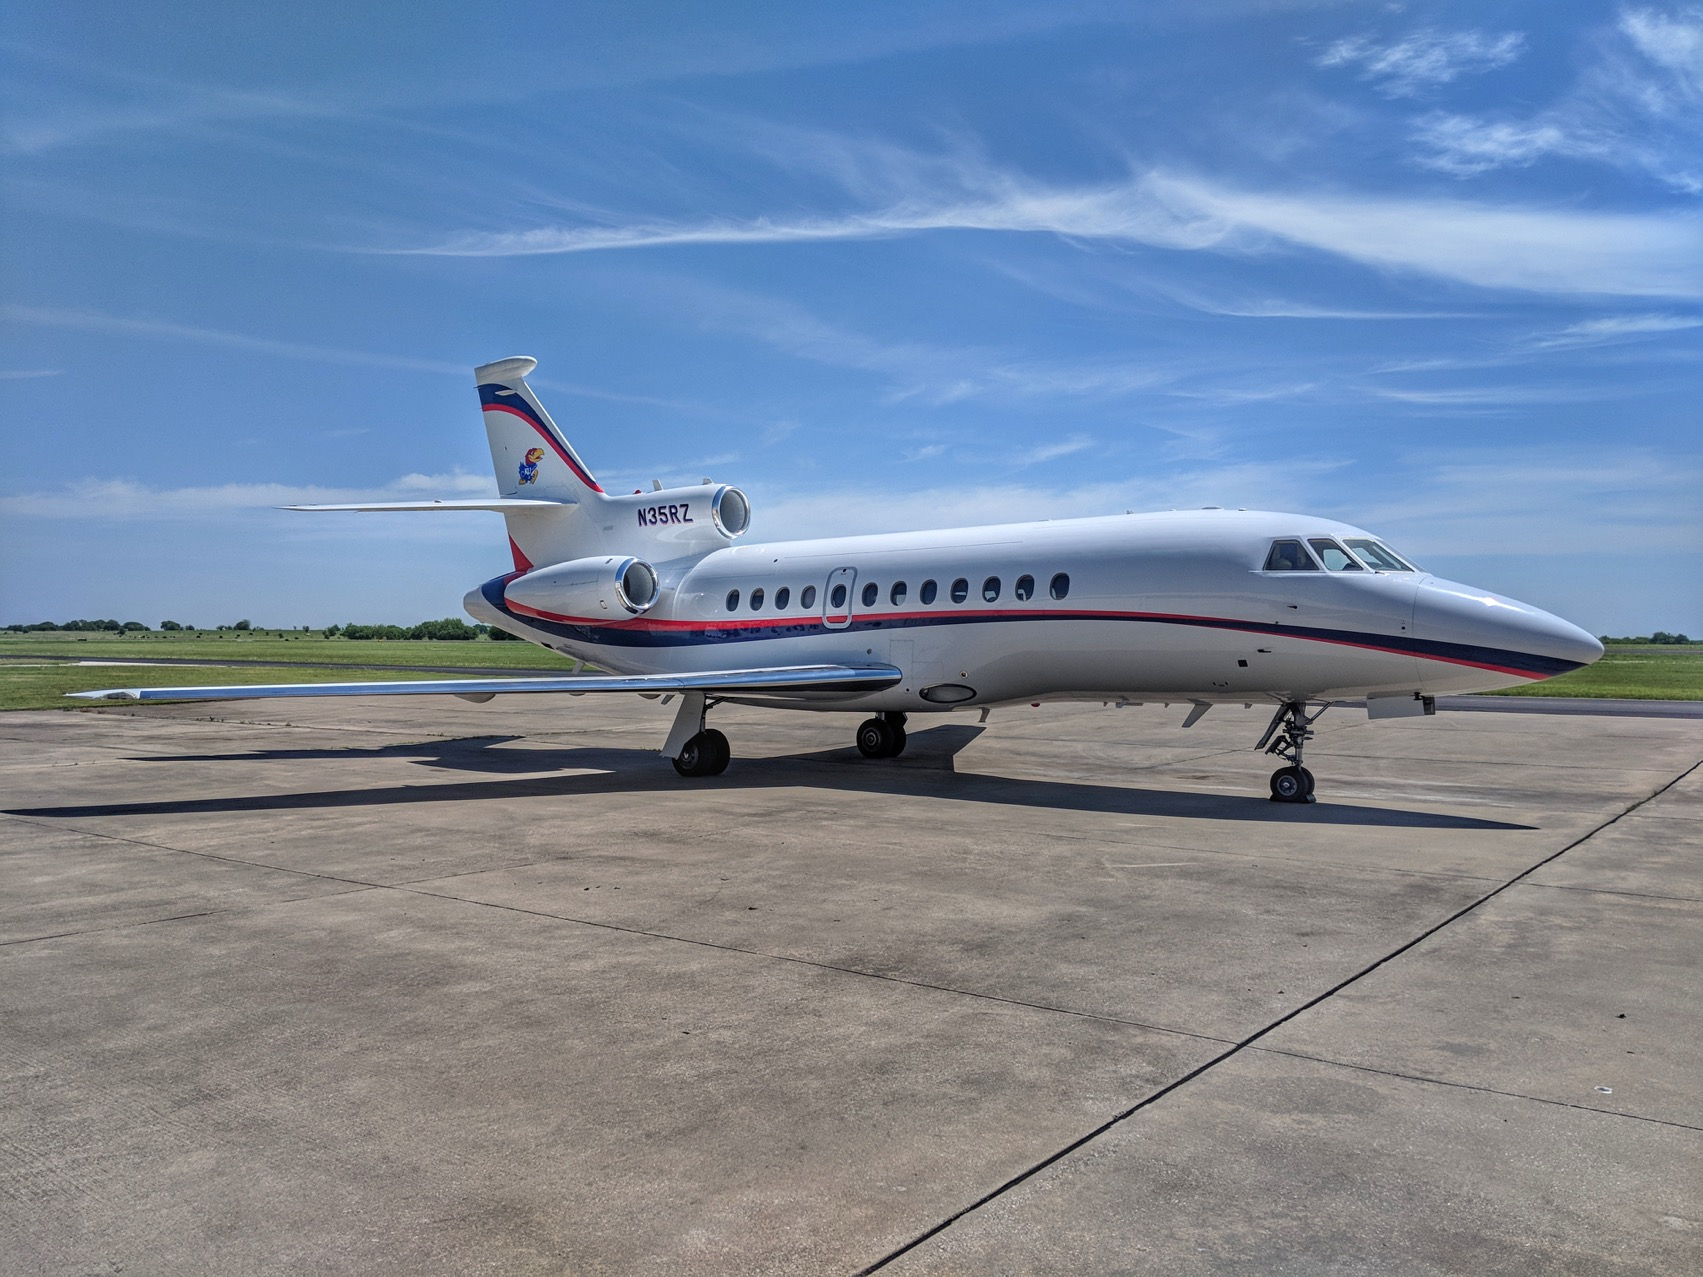 https://resources.globalair.com/aircraftforsale/images/ads/original/85155_94_falcon900b_sn137_e1.jpg